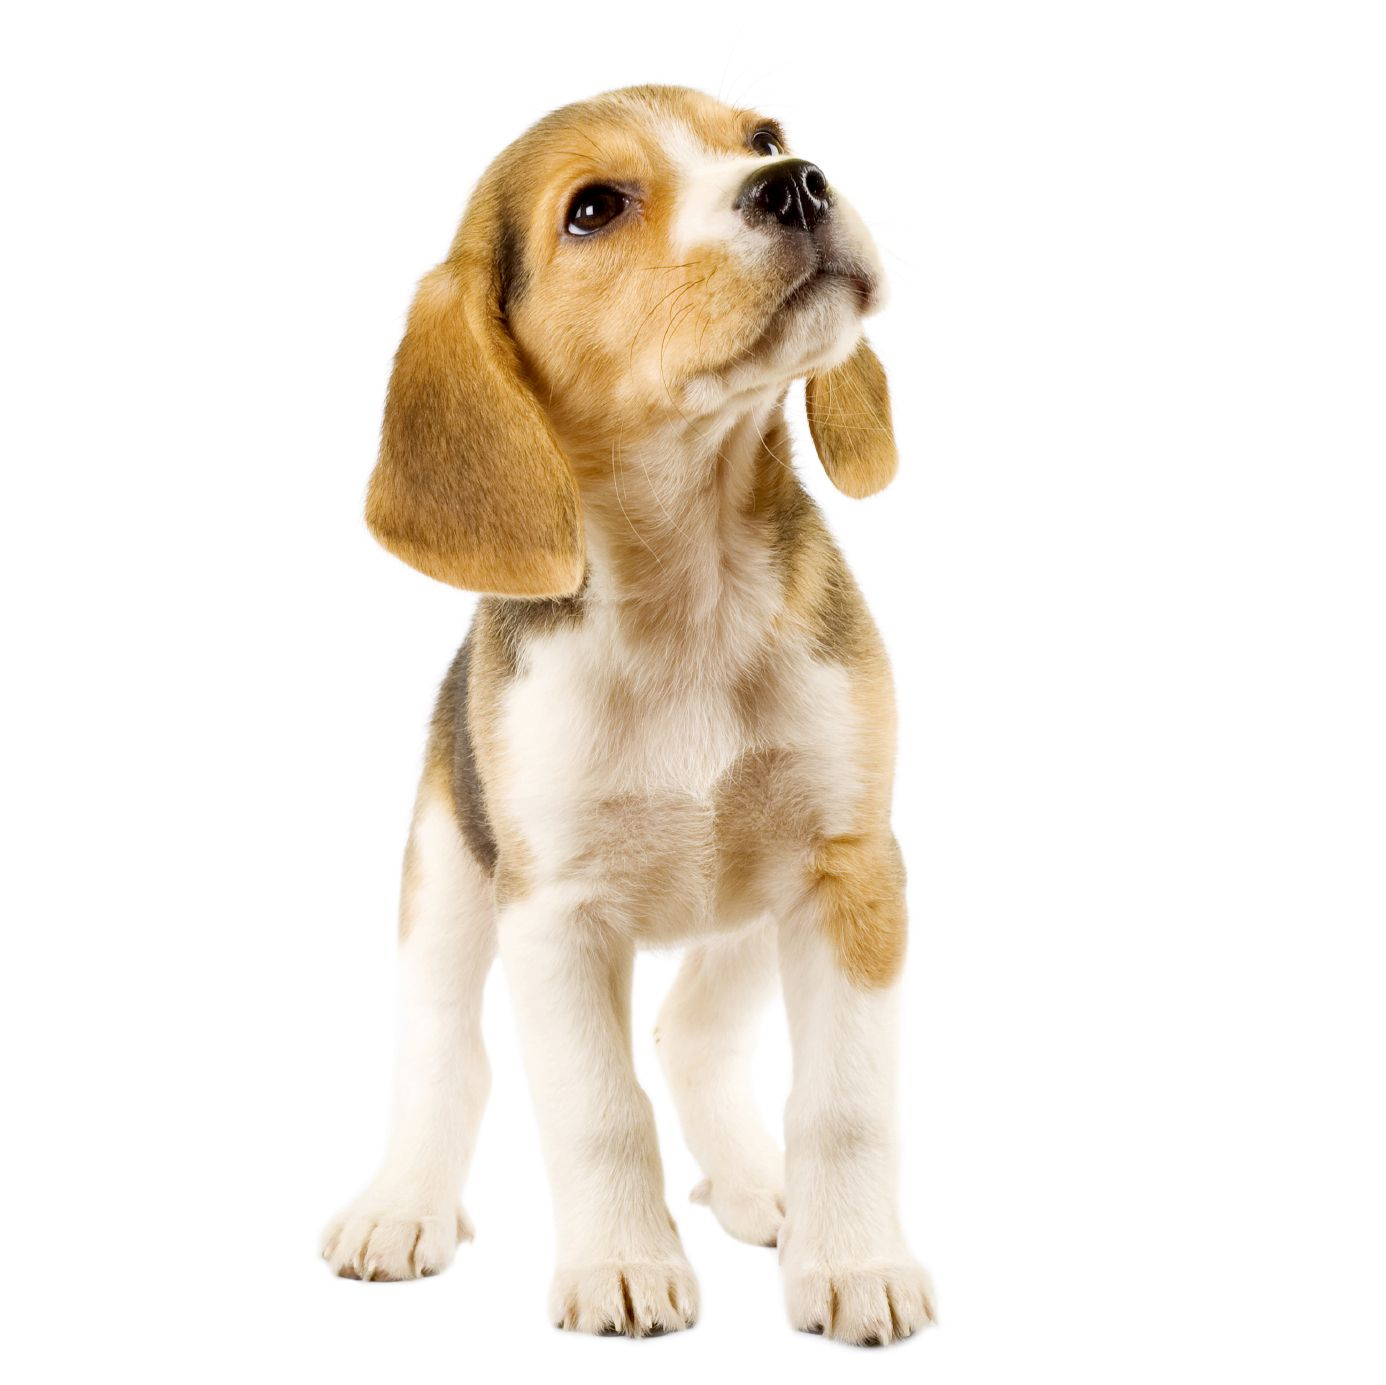 72 The Average Weight In Grams Of A Beagle S Brain Doggy 3